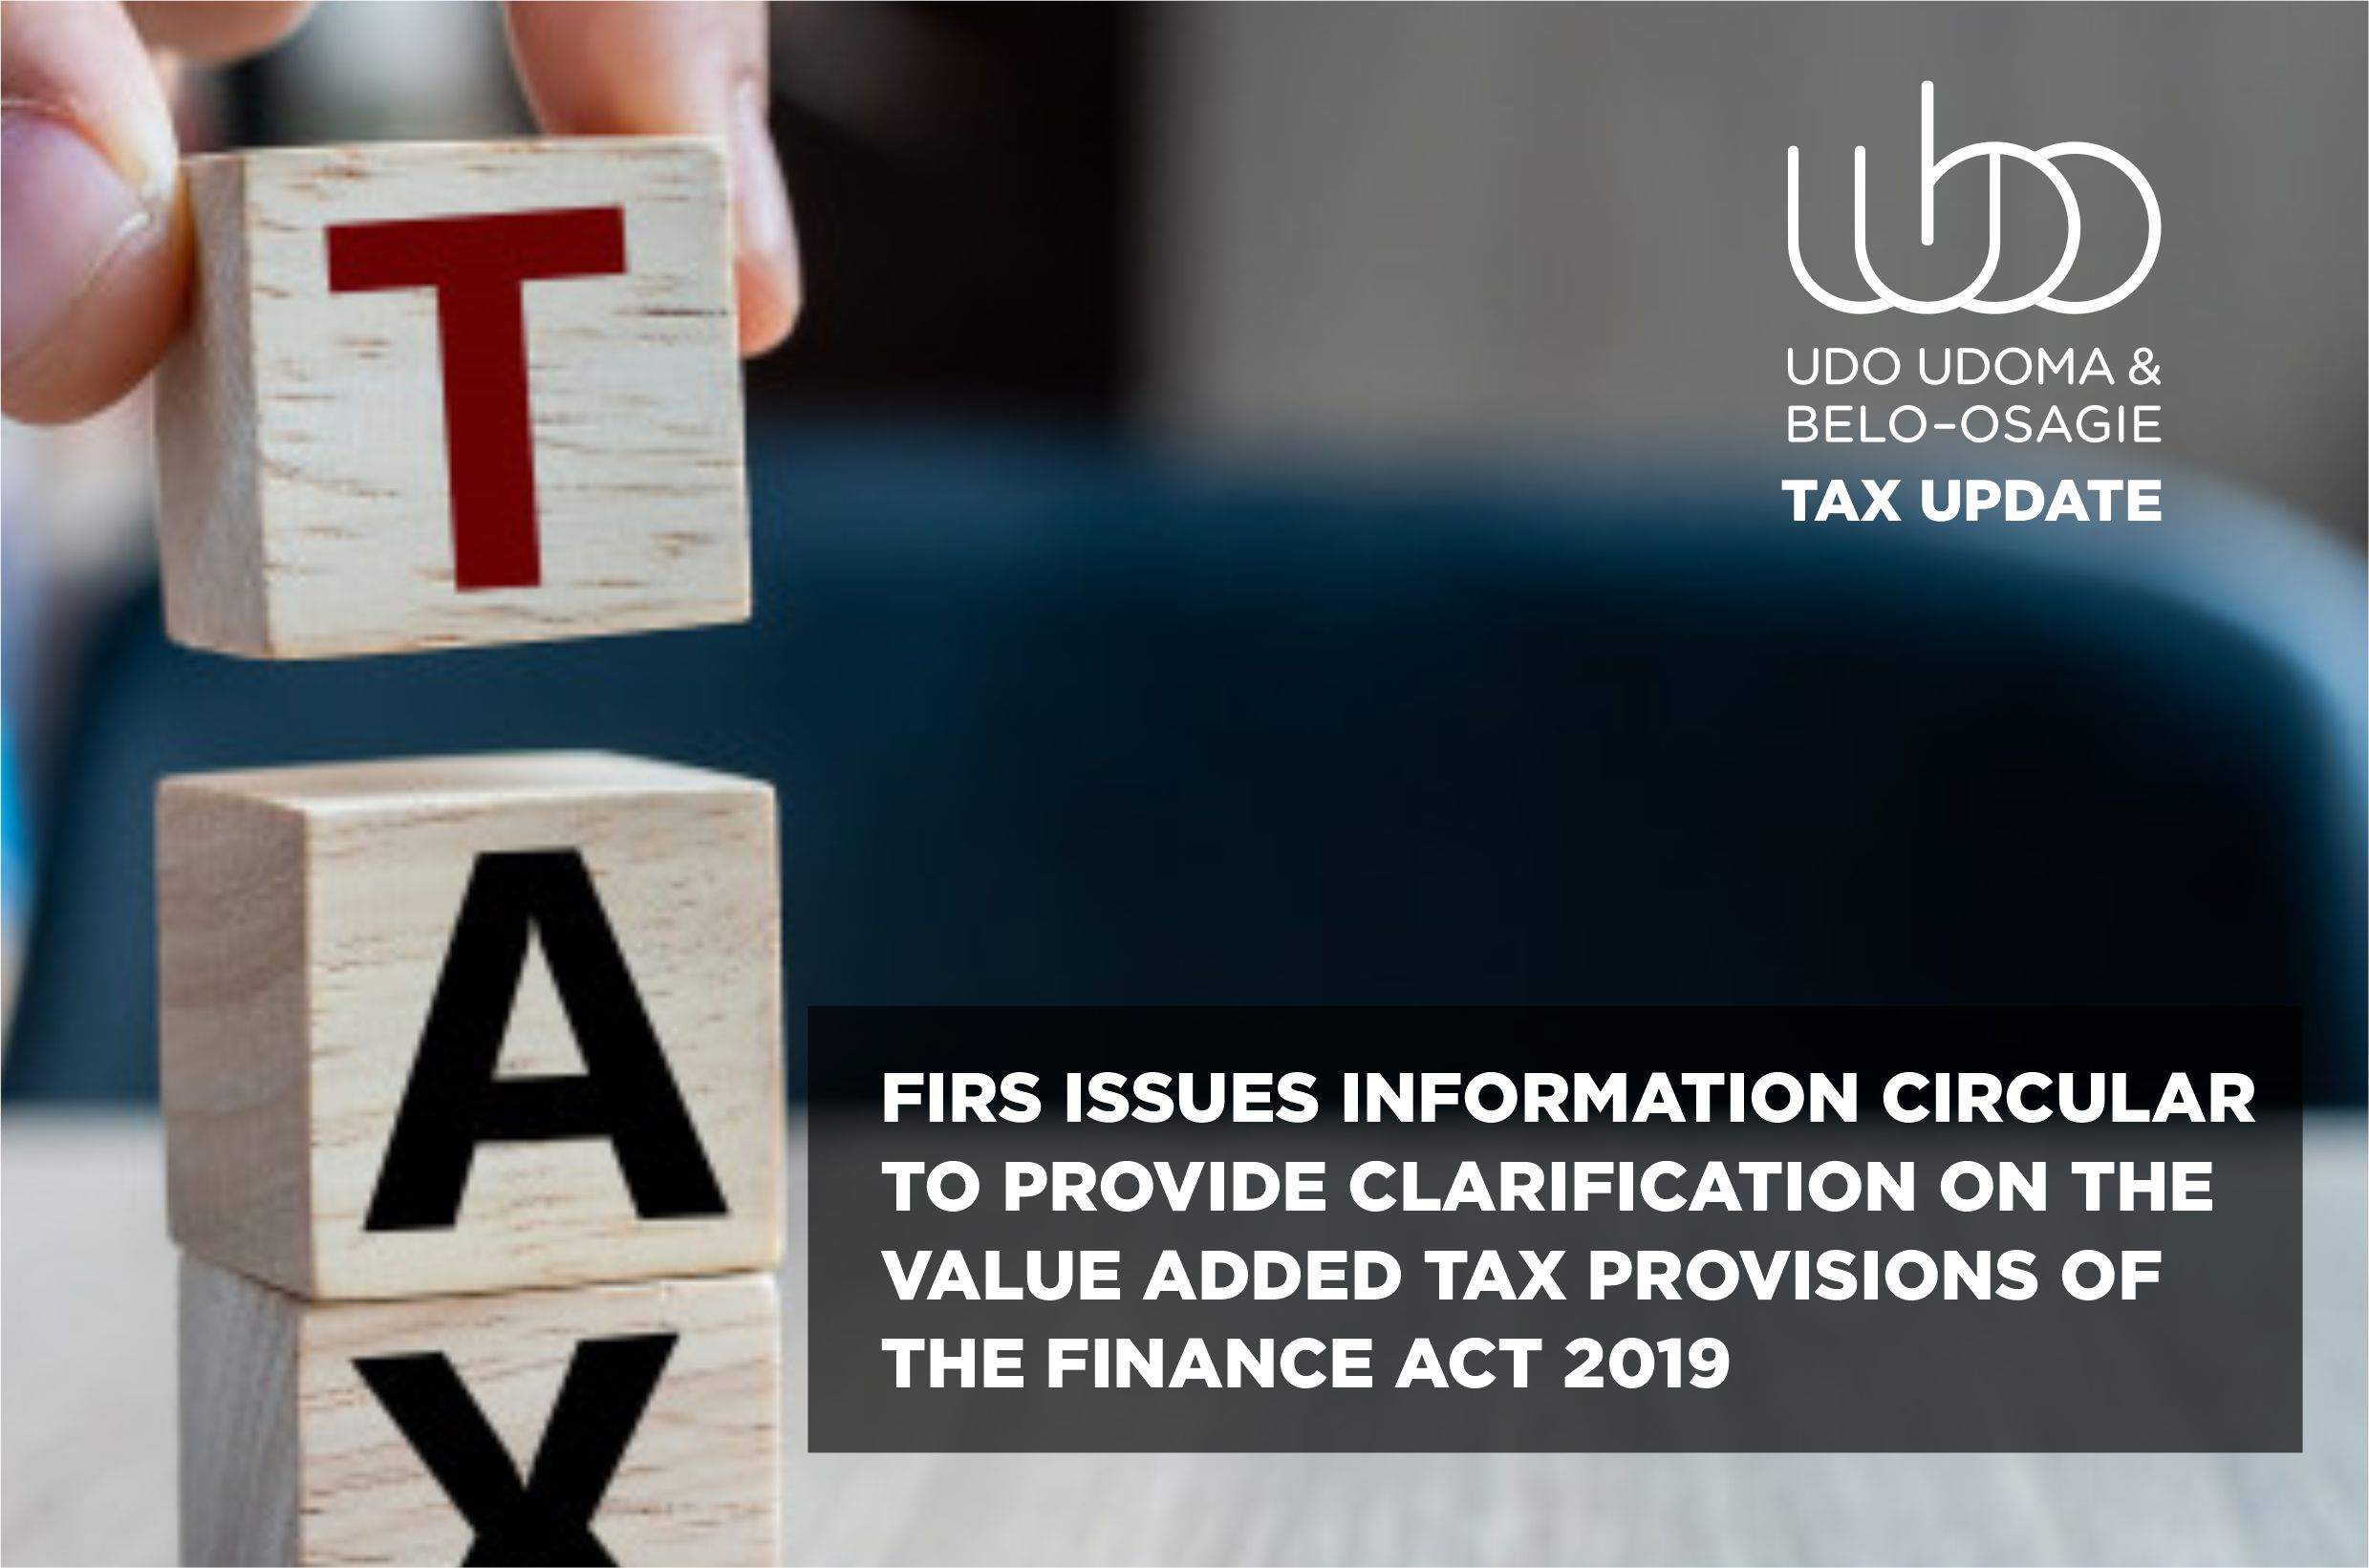 FIRS ISSUES INFORMATION CIRCULAR TO PROVIDE CLARIFICATION ON THE VALUE ADDED TAX PROVISIONS OF THE FINANCE ACT 2019